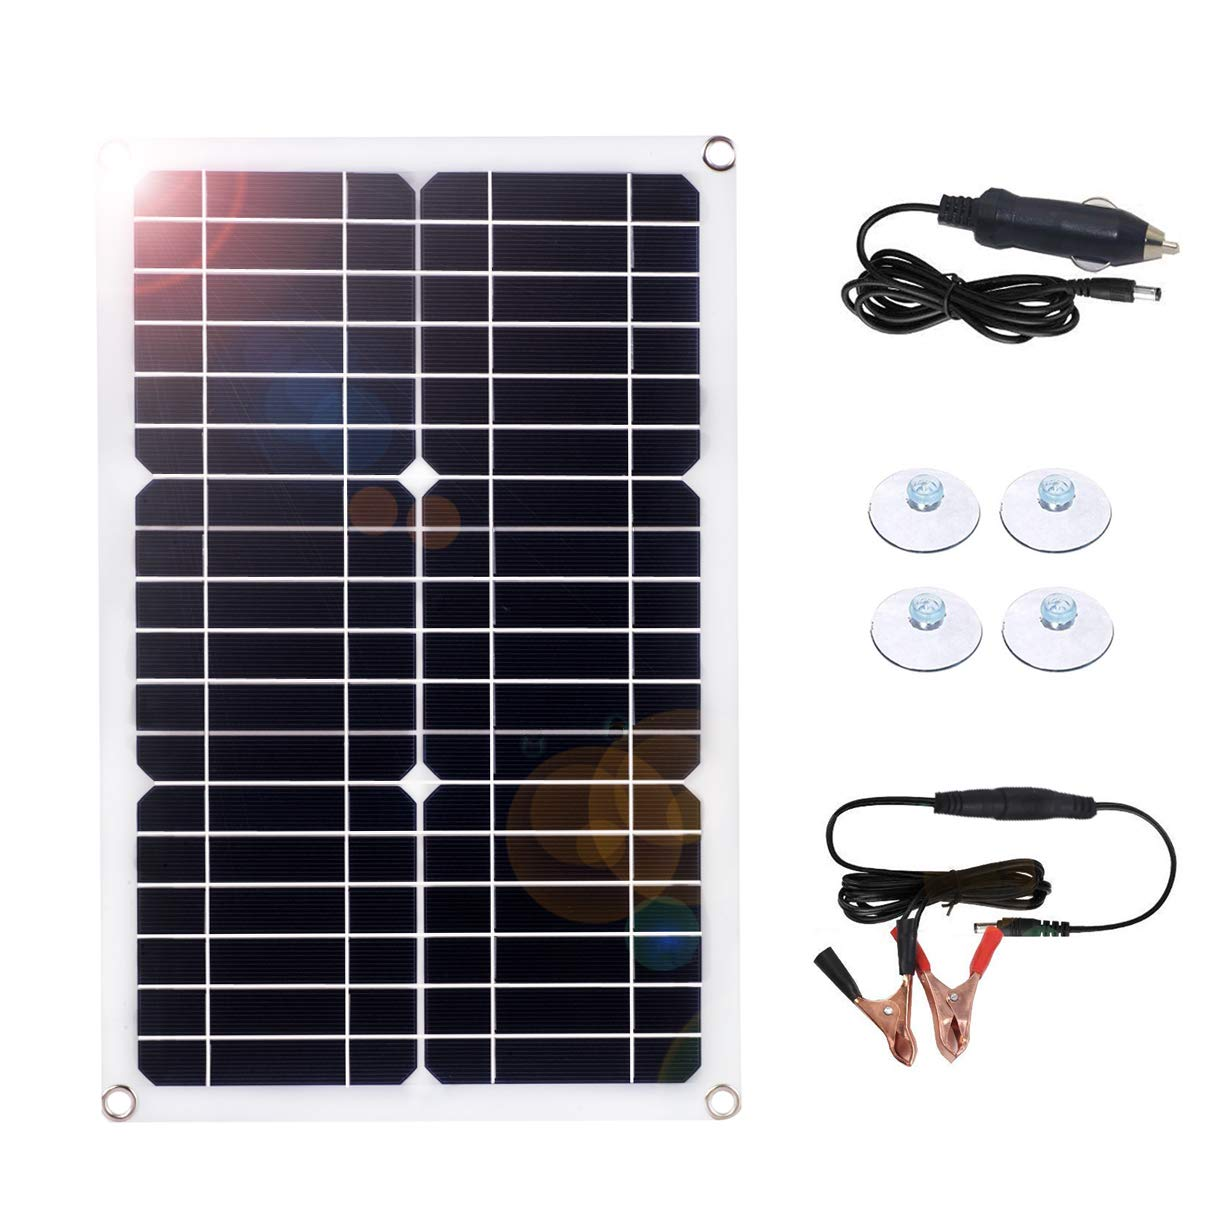 MEGSUN 18W 18V 12V Solar Panel Trickle Charger for Automobile Motorcycle Boat Tractor Power Panel Charger by MEGSUN